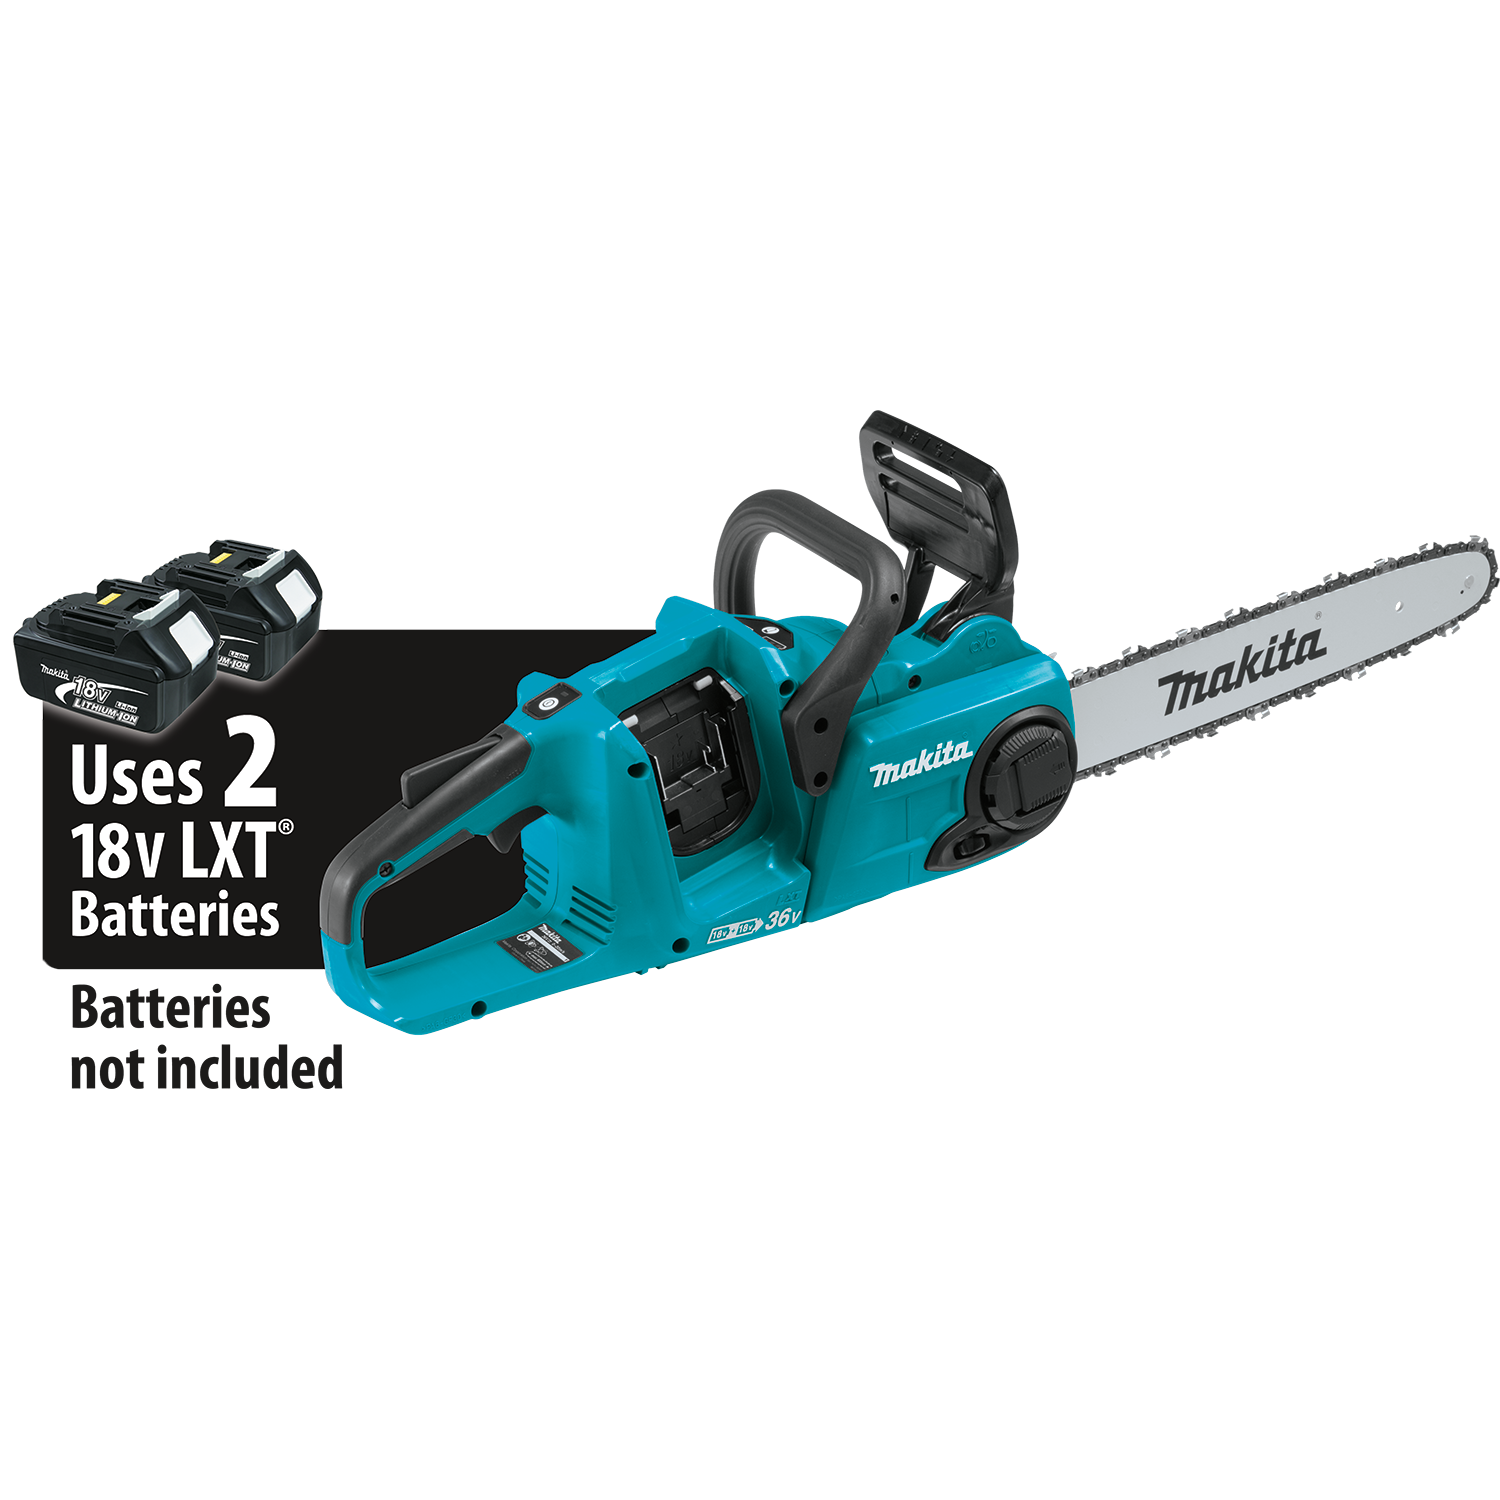 Makita usa product details xcu03z xcu03z greentooth Choice Image